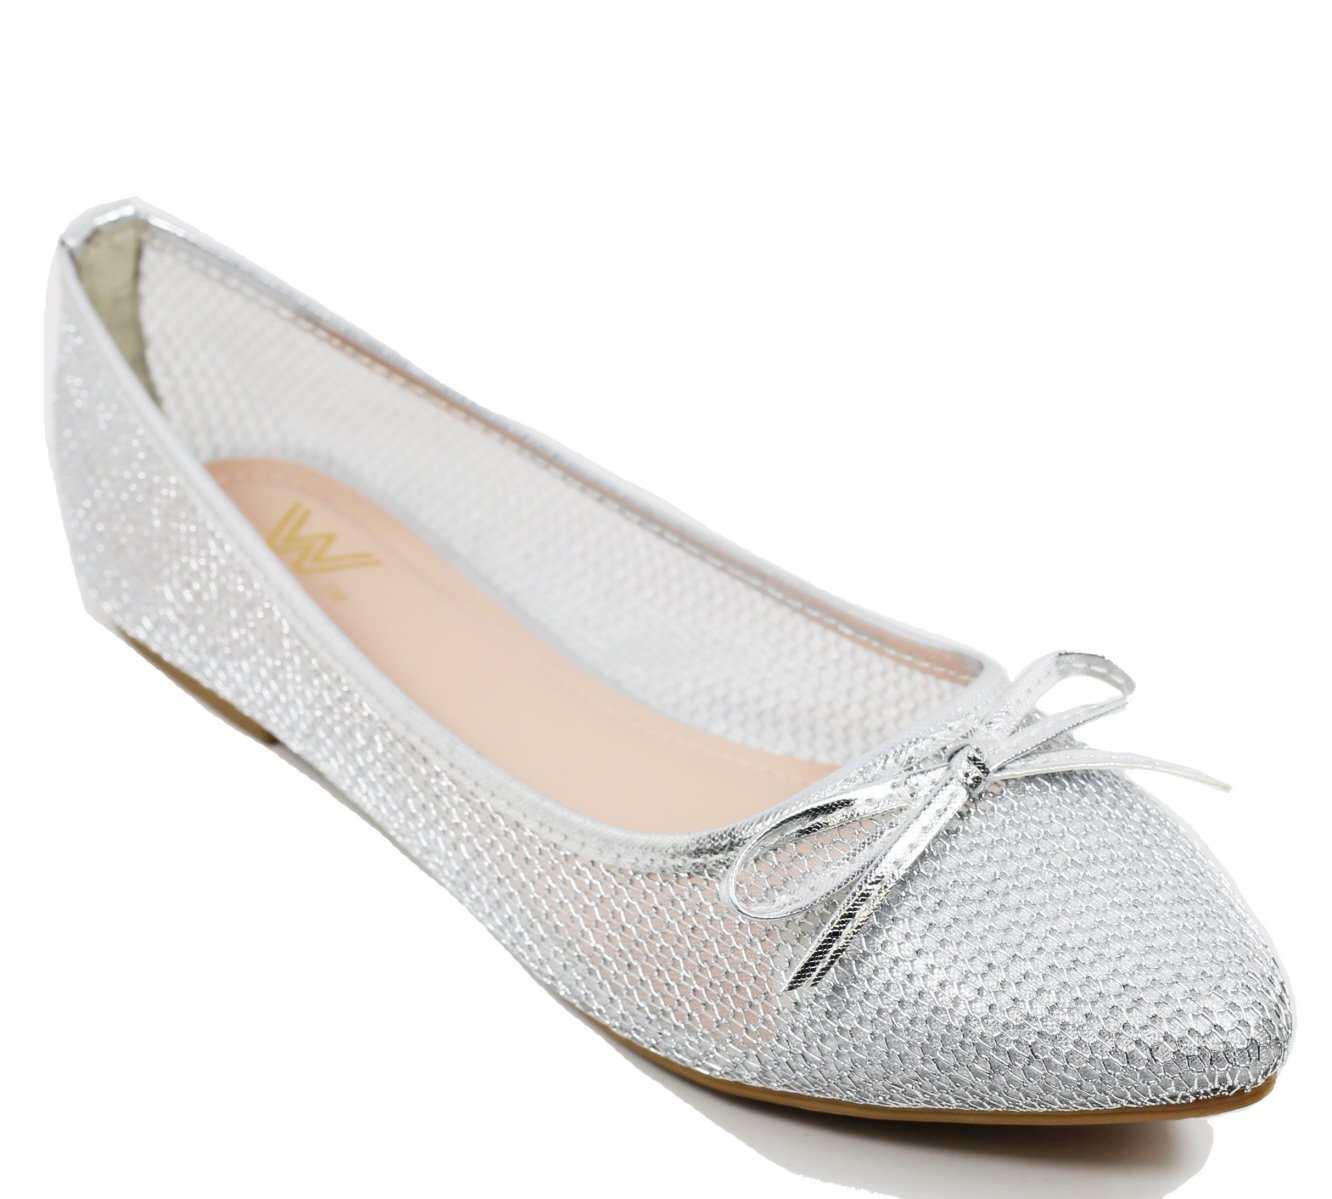 Walstar wedding shoes for bride Flat B073WJDTWM Shoes Mesh Flat Shoes B073WJDTWM Flat 9 B(M) US|Silver 3a9db6